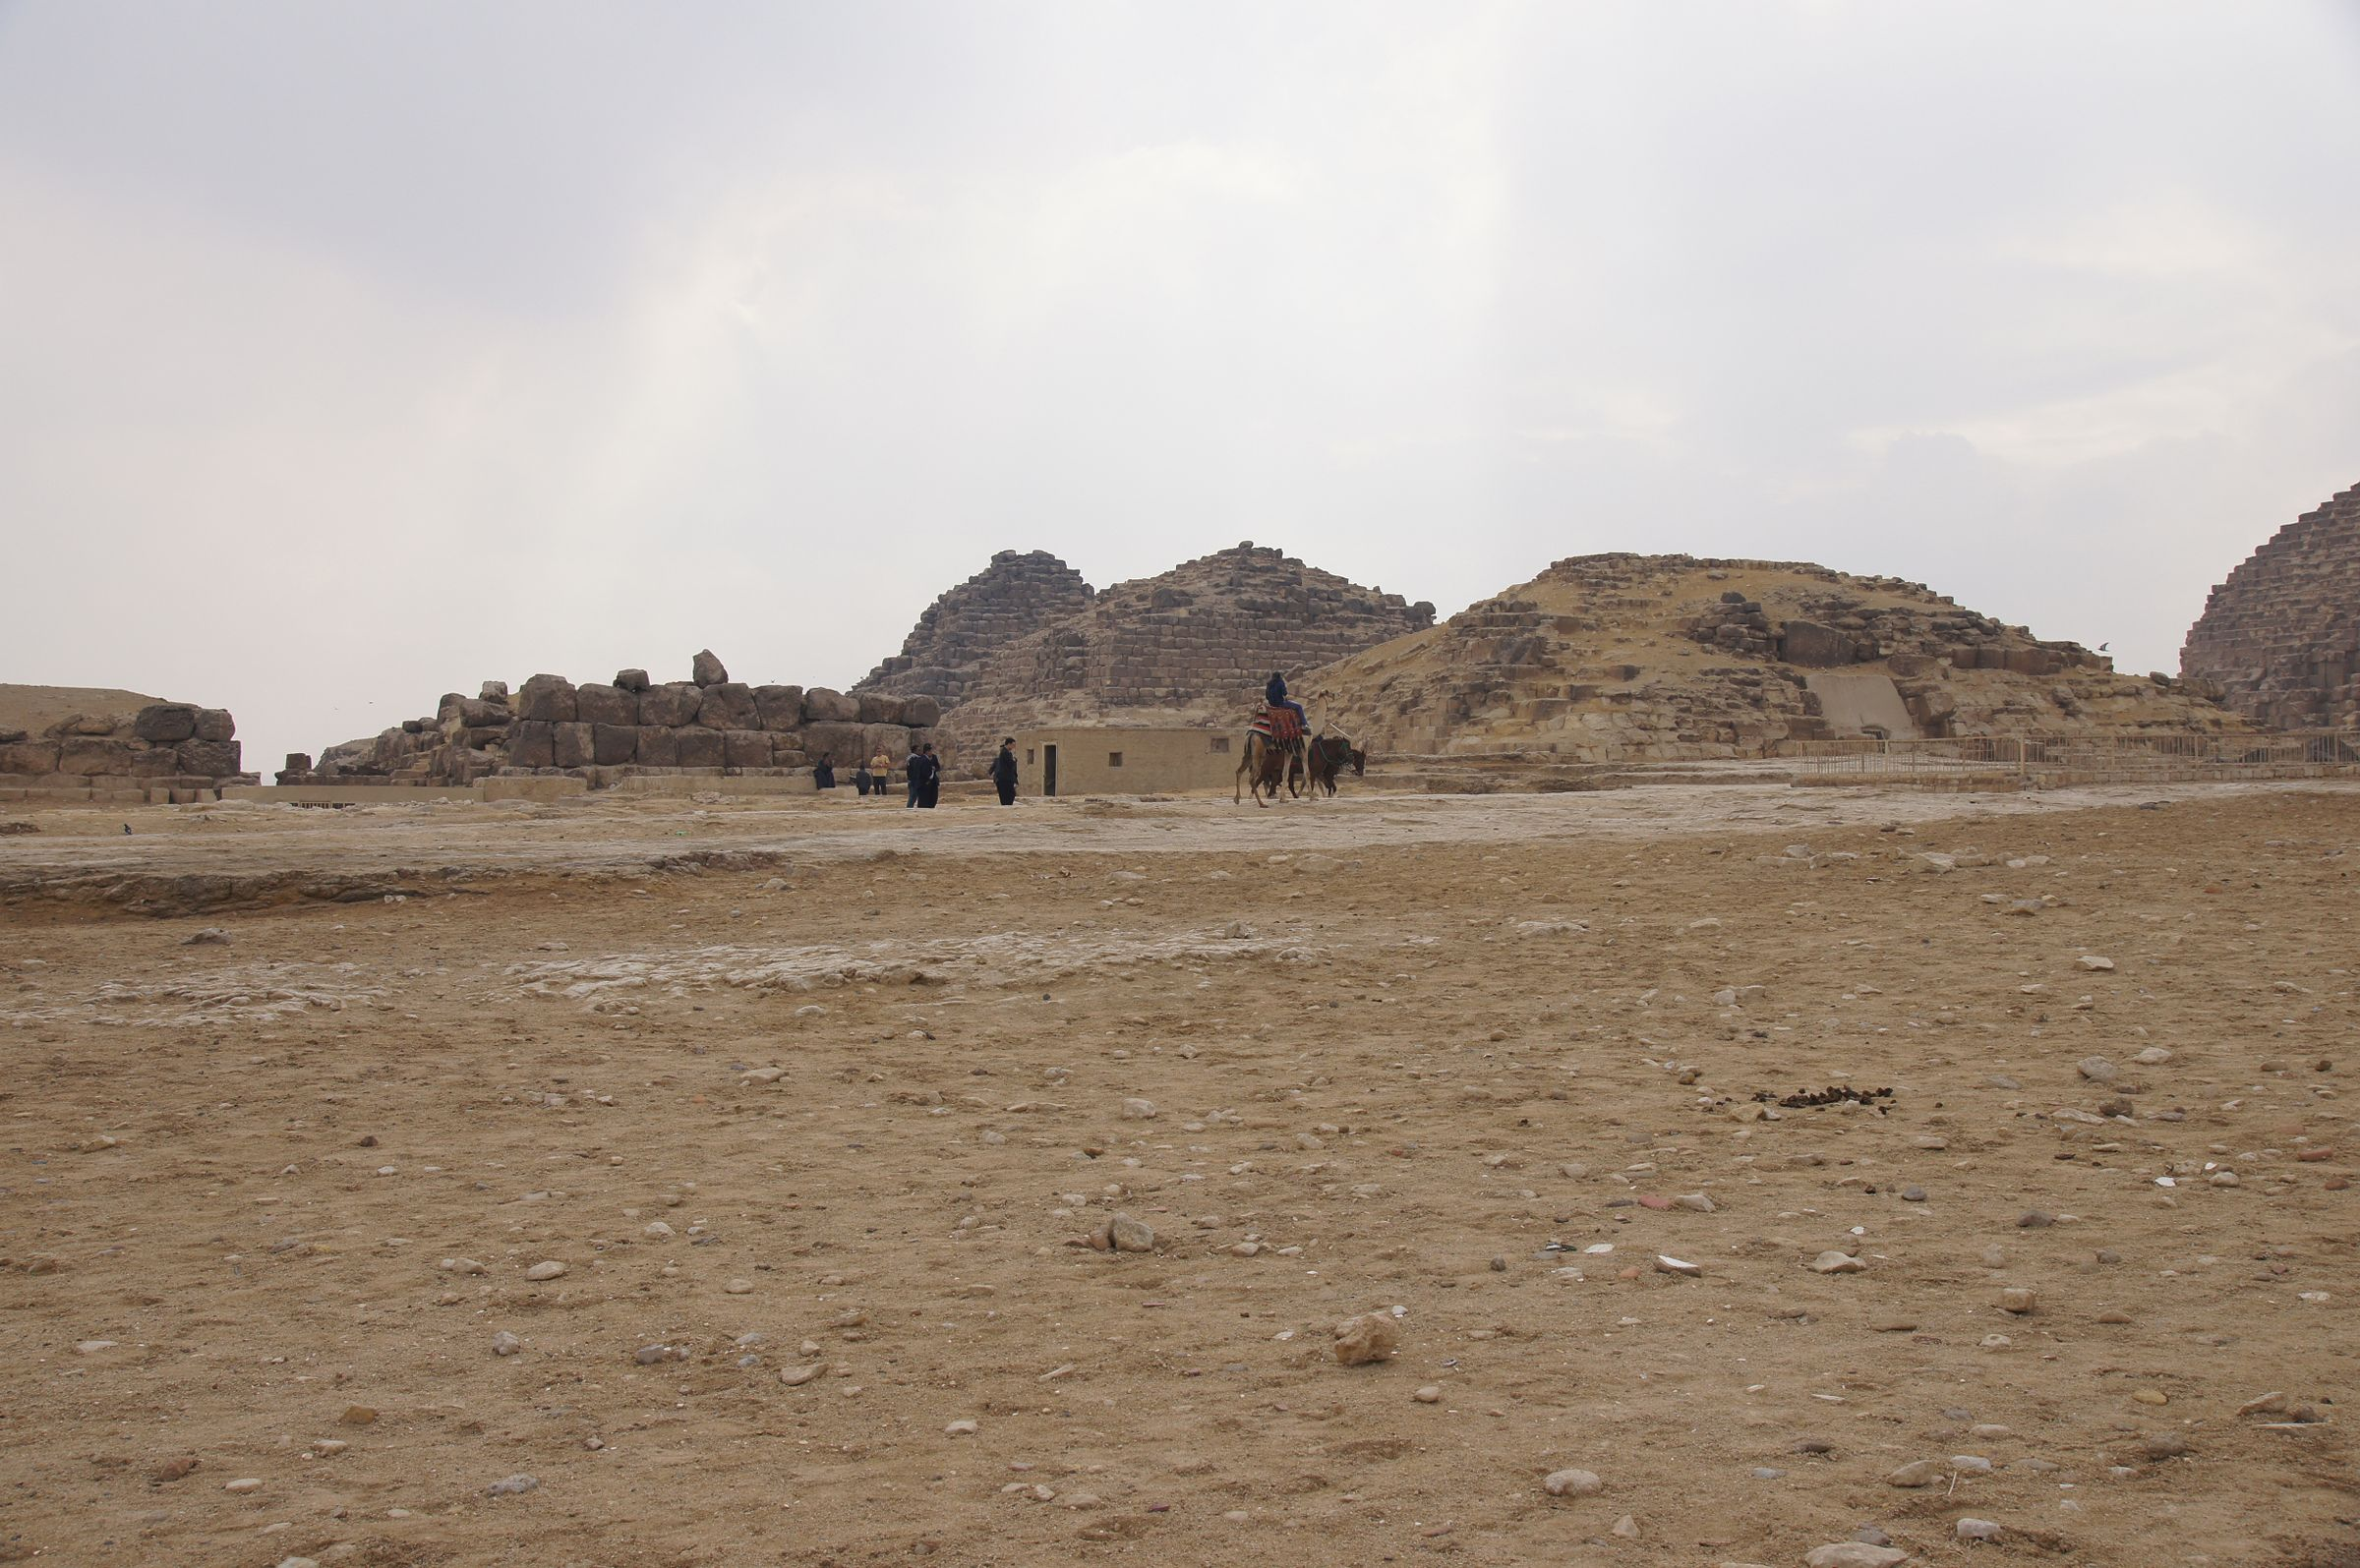 Eastern Cemetery and Khufu Pyramid Complex: Site: Giza; View: G 7110-7120: G 7110, G 7210-7220: G 7120, G I-a, G I-b, G I-c, Khufu Pyramid